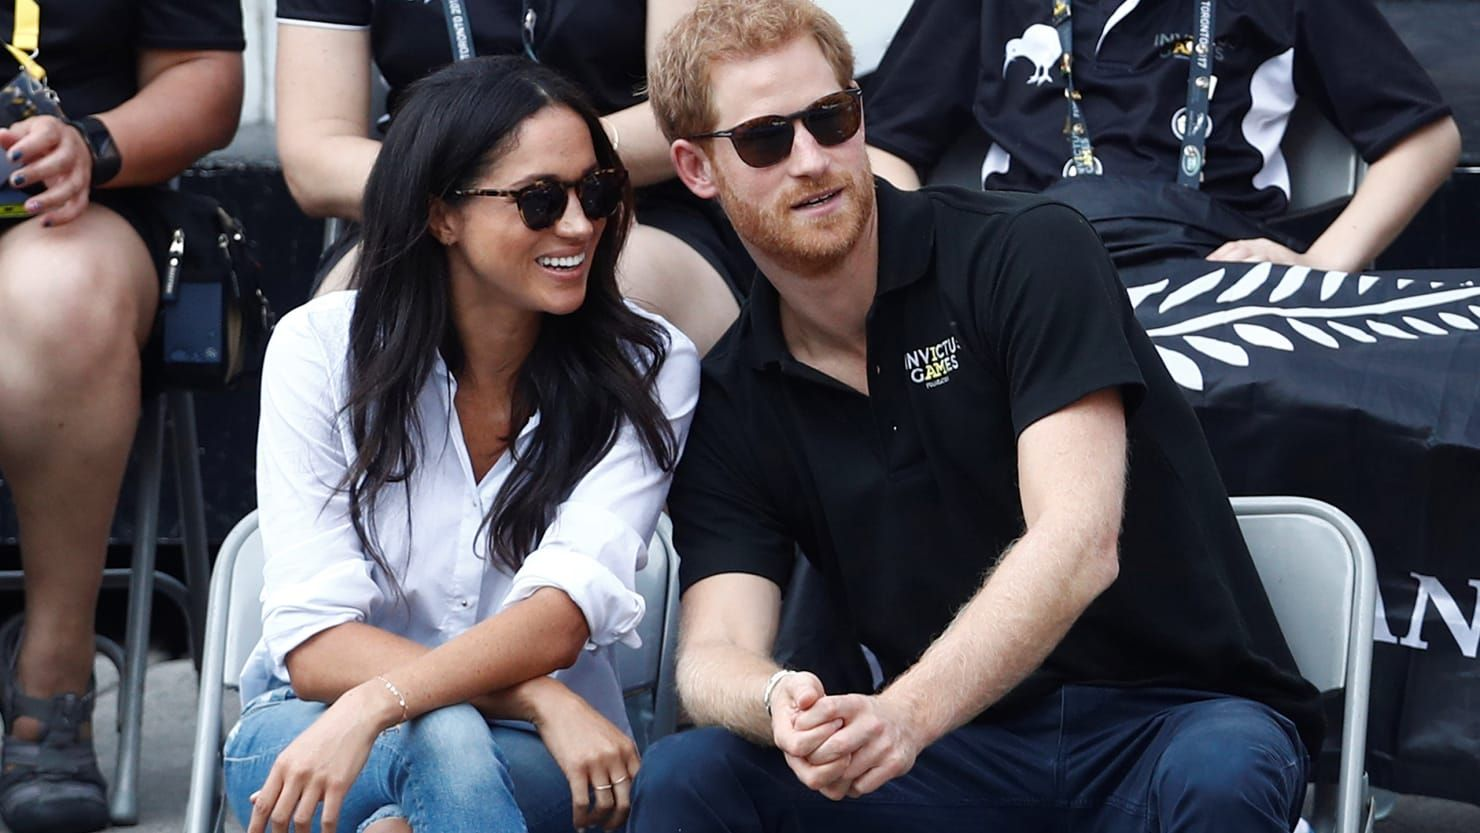 Prince Harry and Meghan Markle Will Get to the Church in